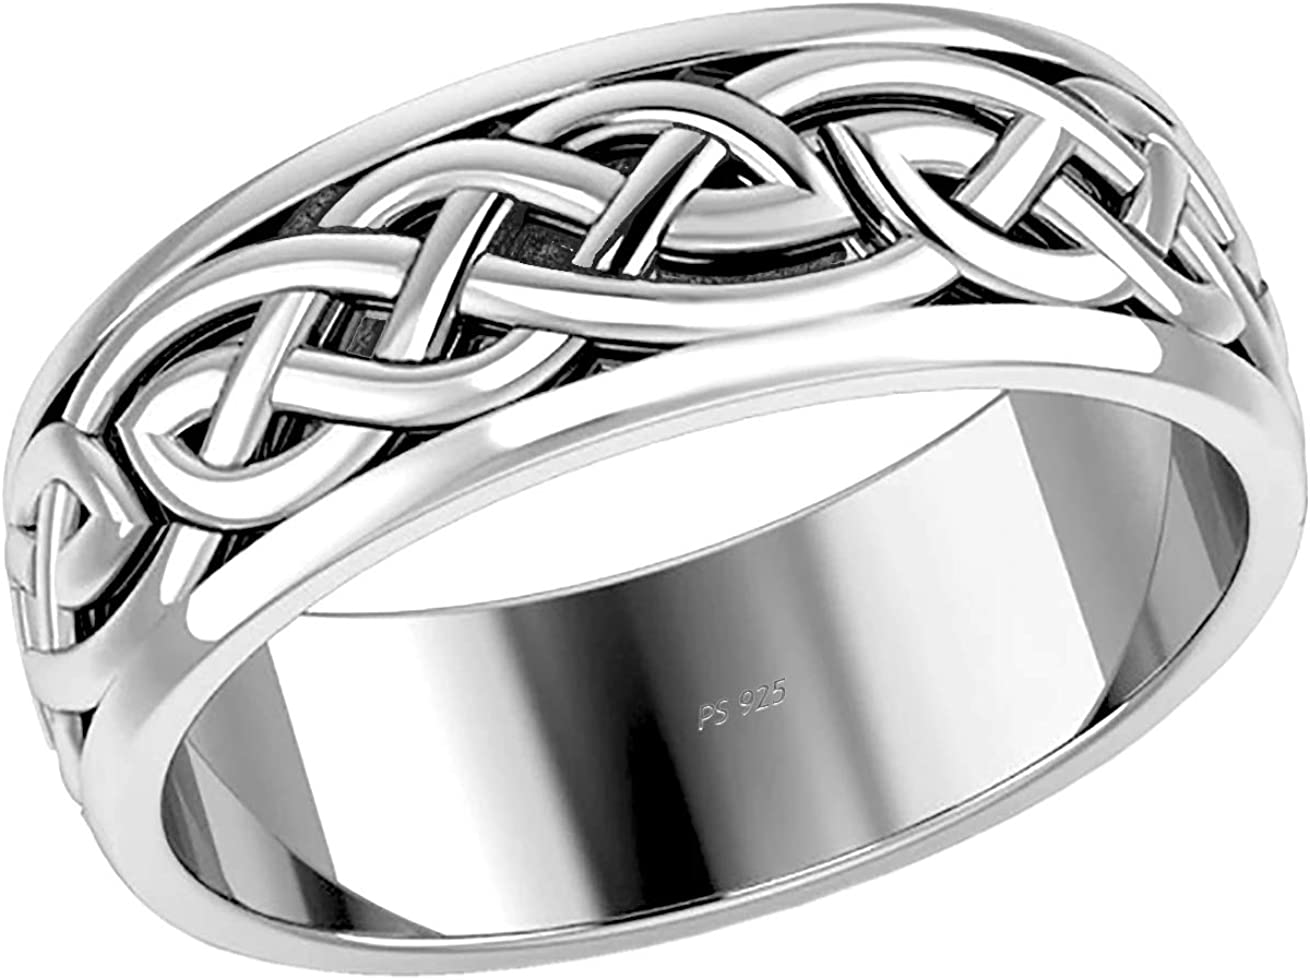 US Jewels And Gems Men's 925 Sterling Silver Irish Celtic Knot Wedding Spinner Ring Band